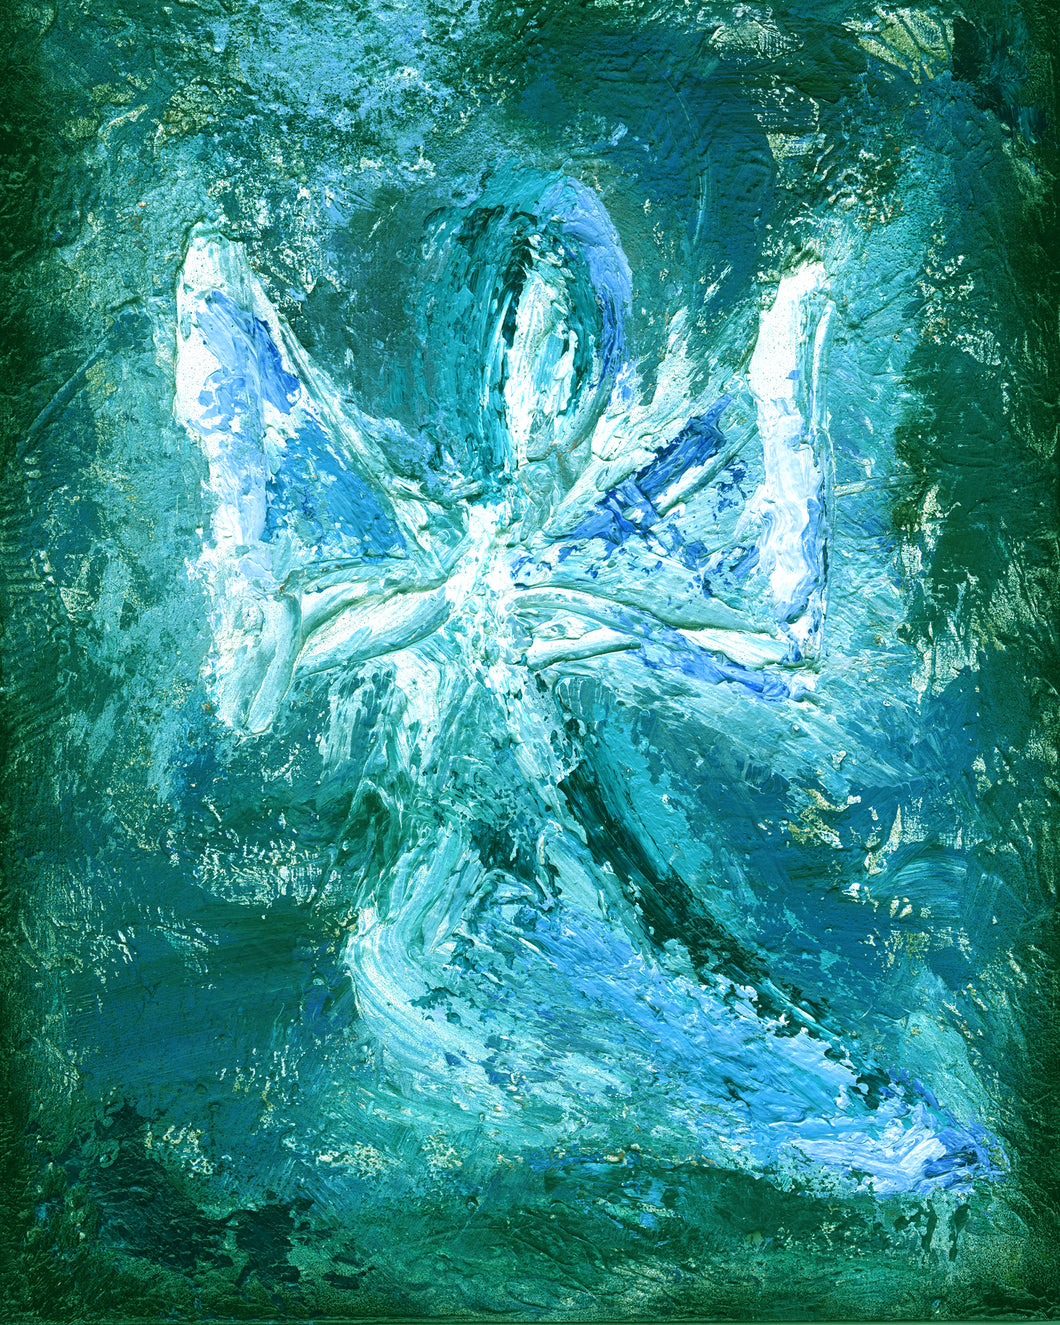 Tiffany Blue Angel Wall Art | Angel Painting | Turquoise Angel Art | Fine Art Metallic Canvas | Visionary Art | Small Medium Large Angel Art | Peaceful